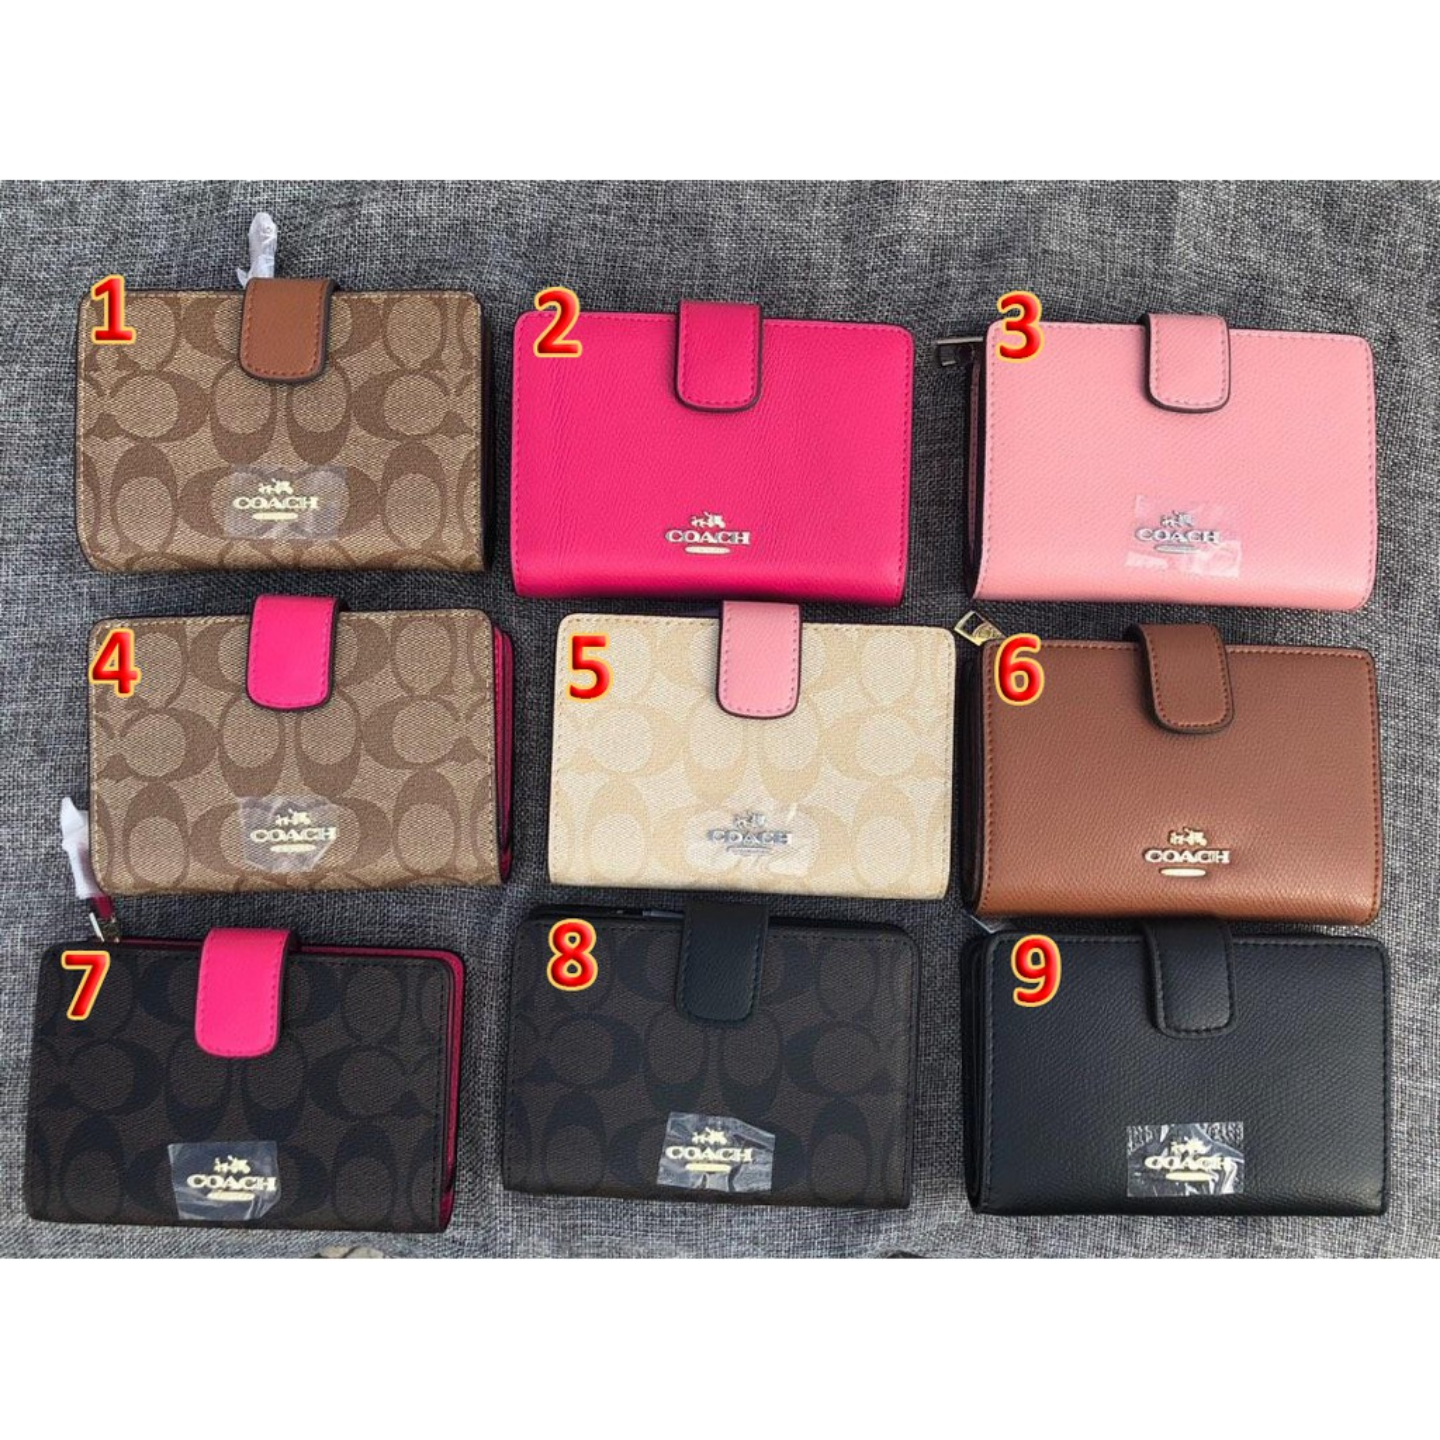 (SG COD) Ladies  Coach wallet F53562 F53436 wallet and cardholder short wallet fashion wallet